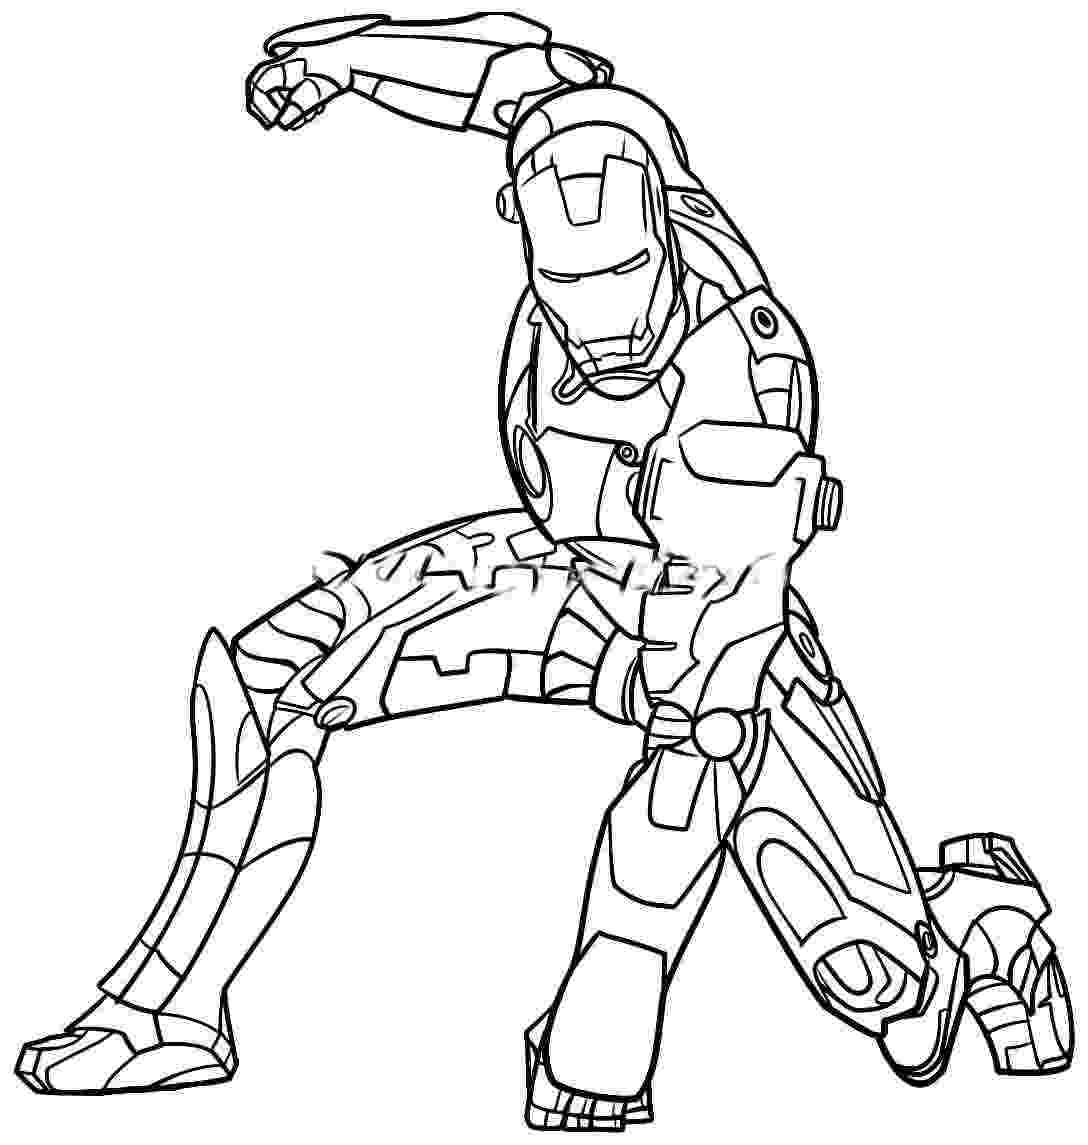 superhero coloring page superhero coloring pages to download and print for free page coloring superhero